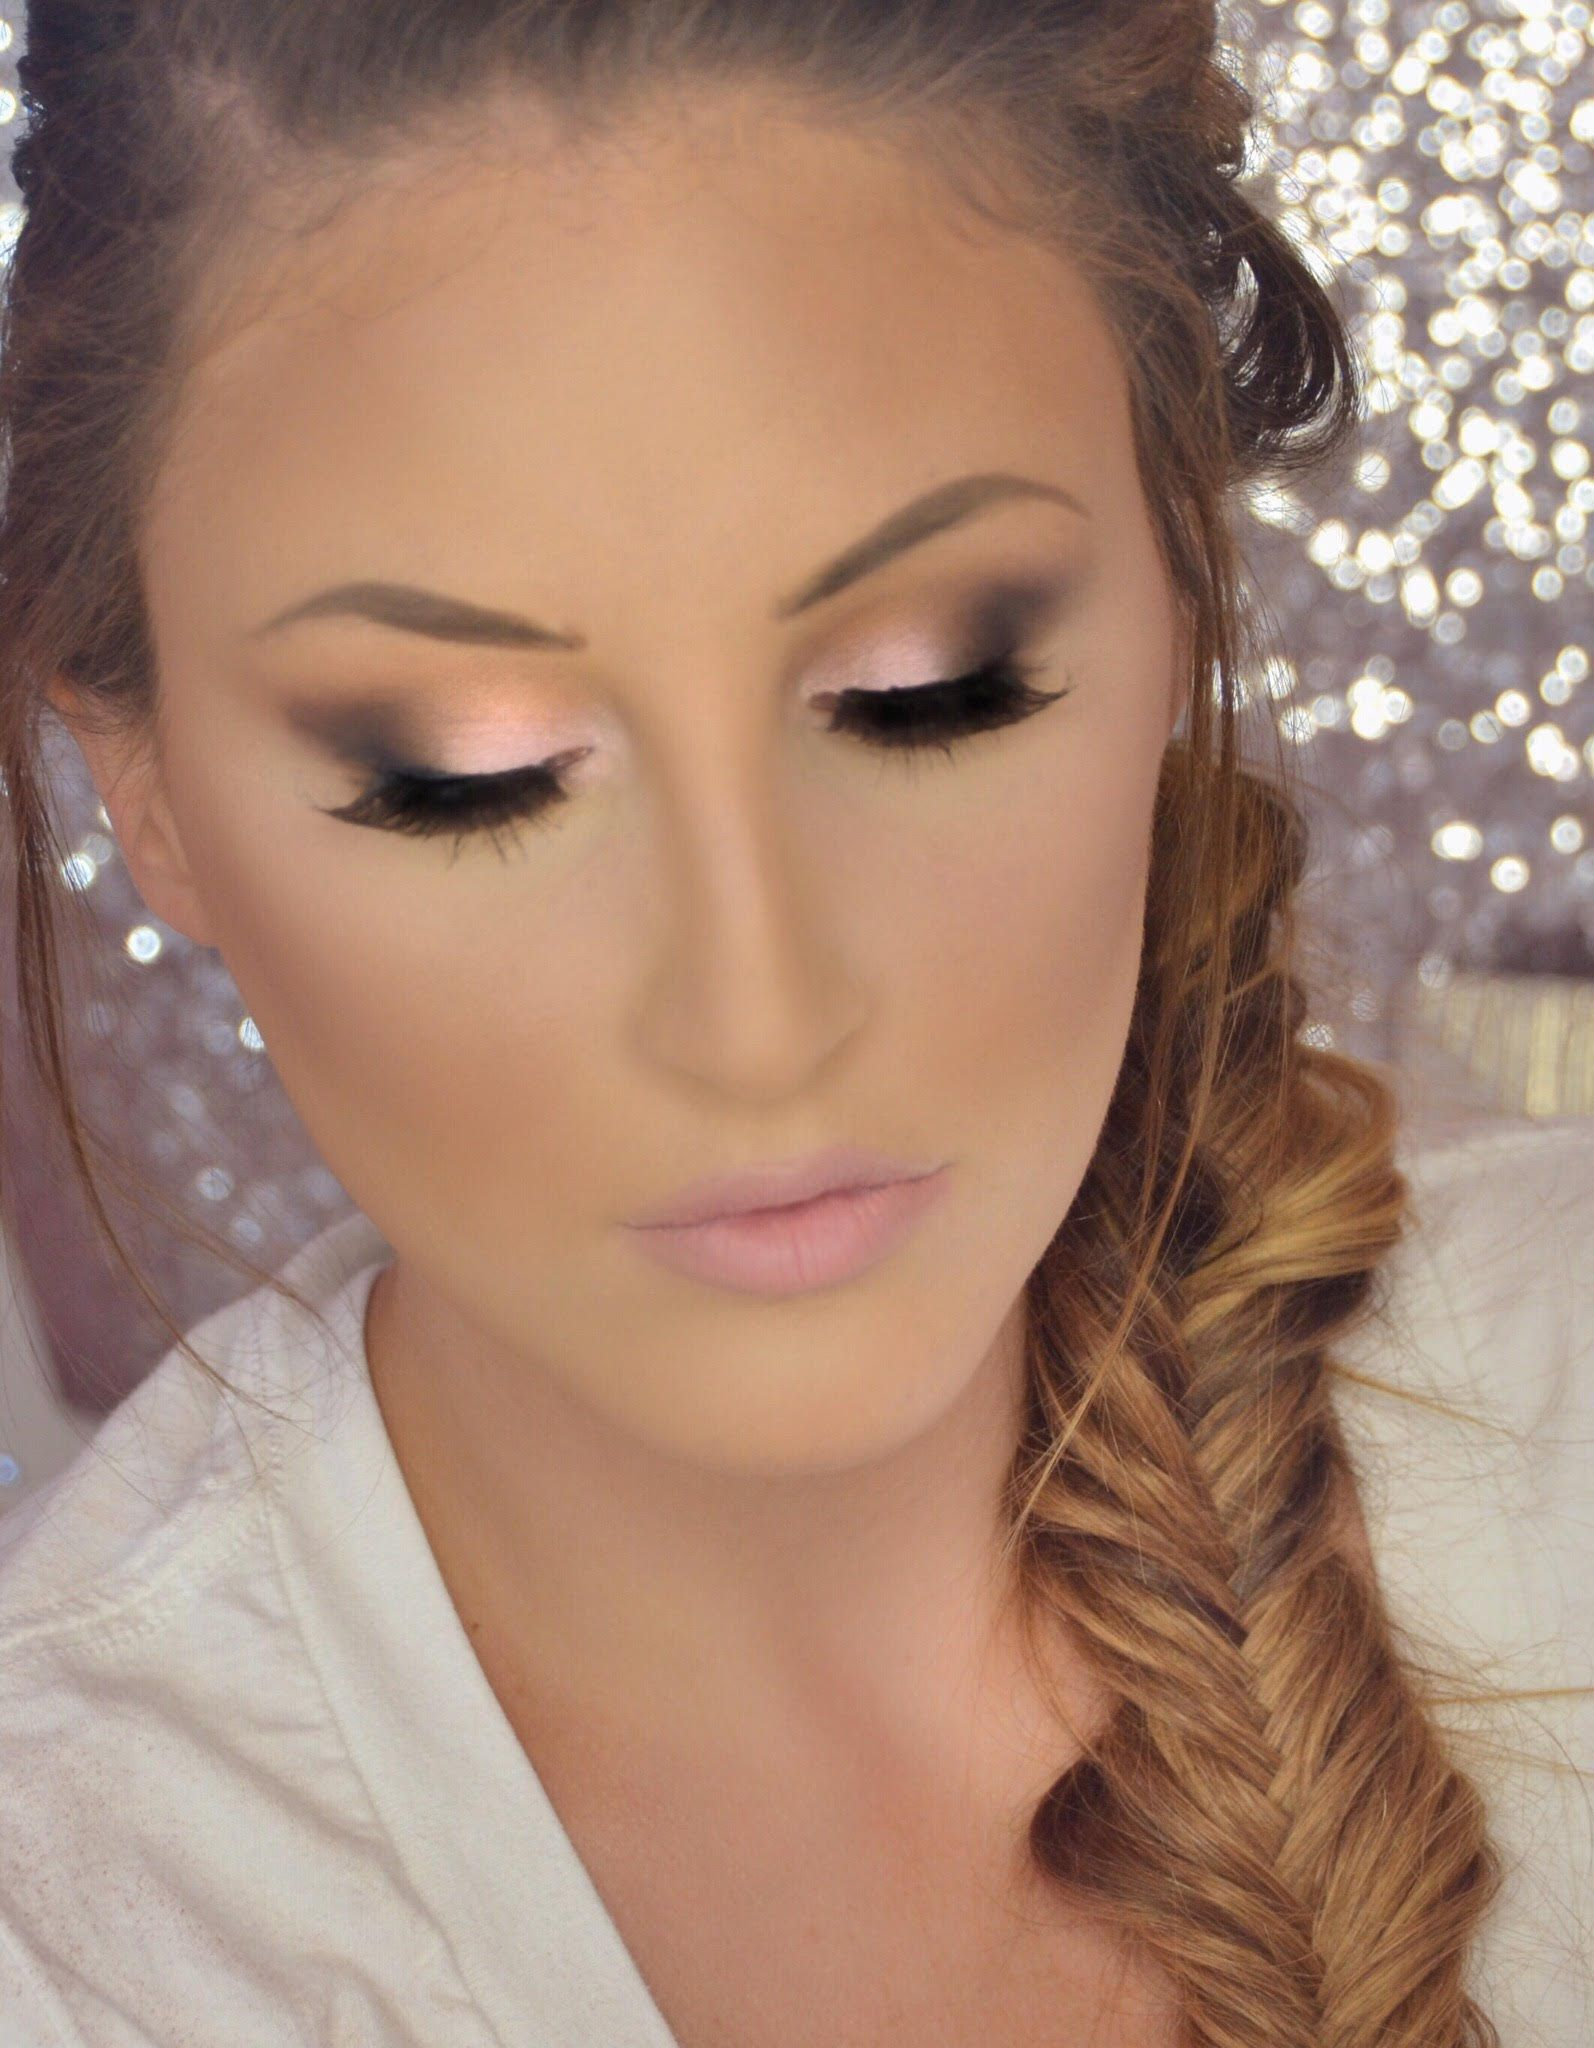 URBAN DECAY THROUGH THE LOOKING GLASS TUTORIAL Makeup